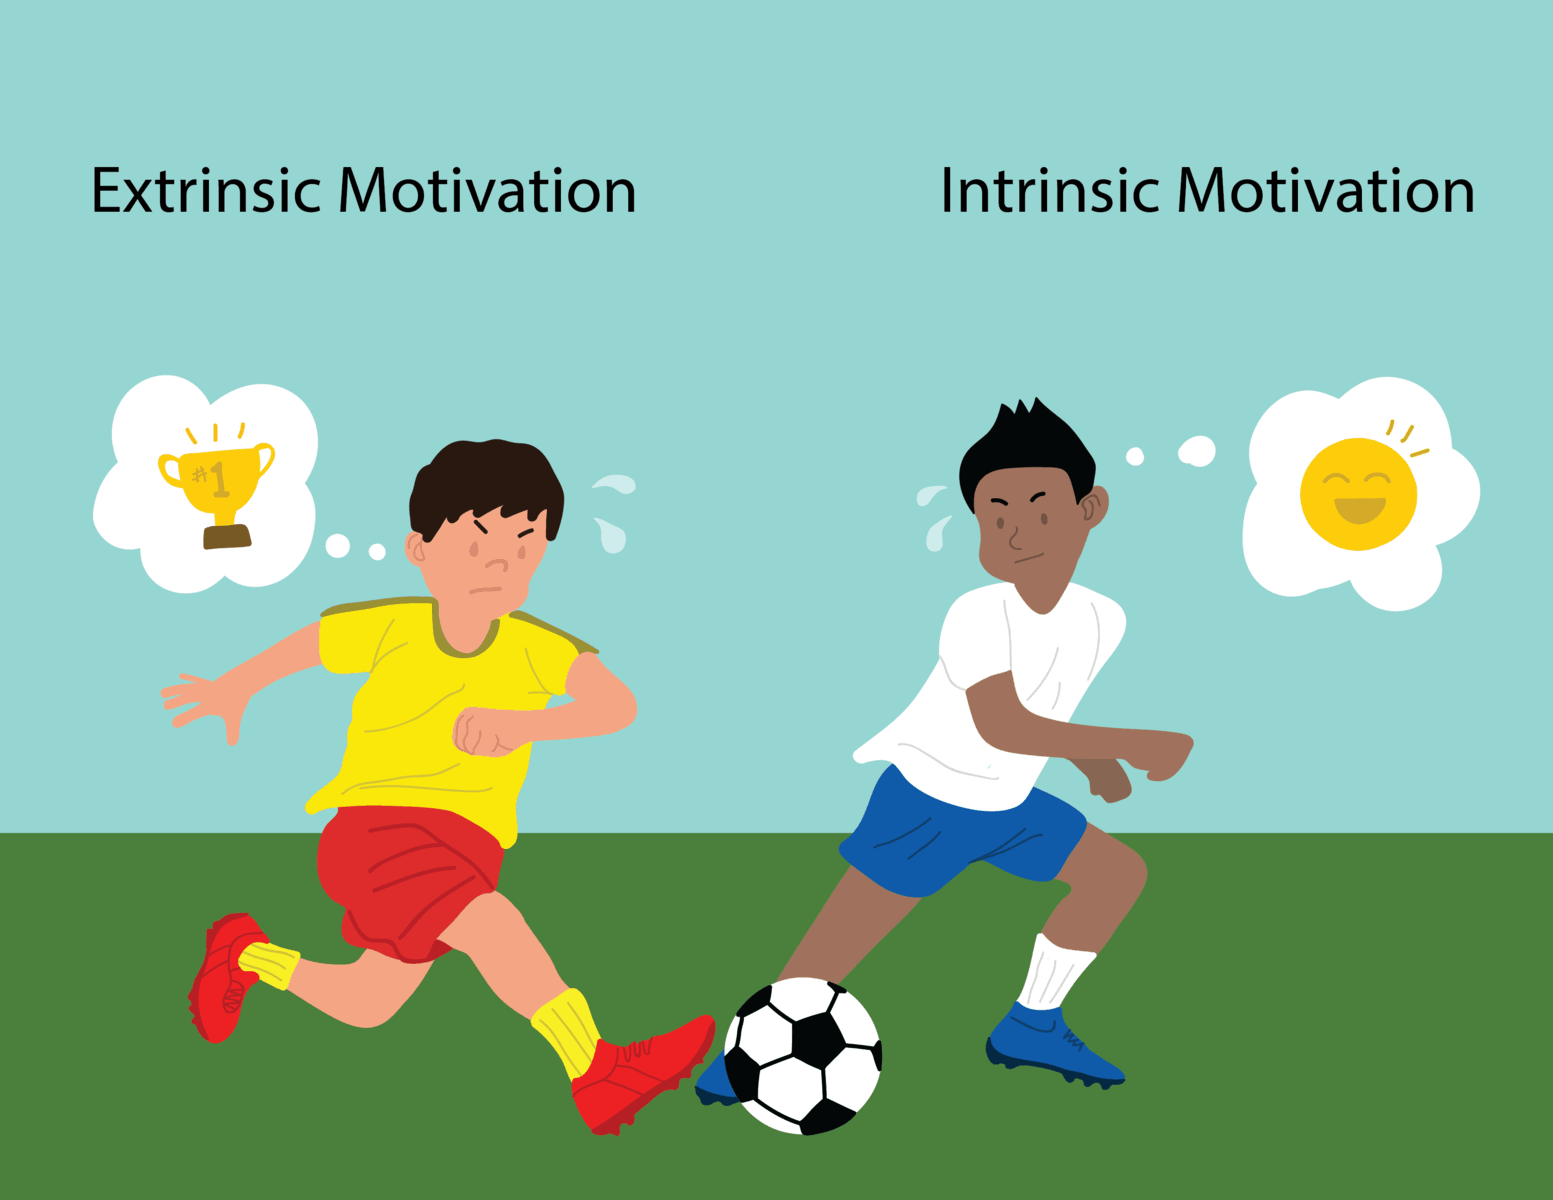 Two basic types of Motivations- Intrinsic & Extrinsic